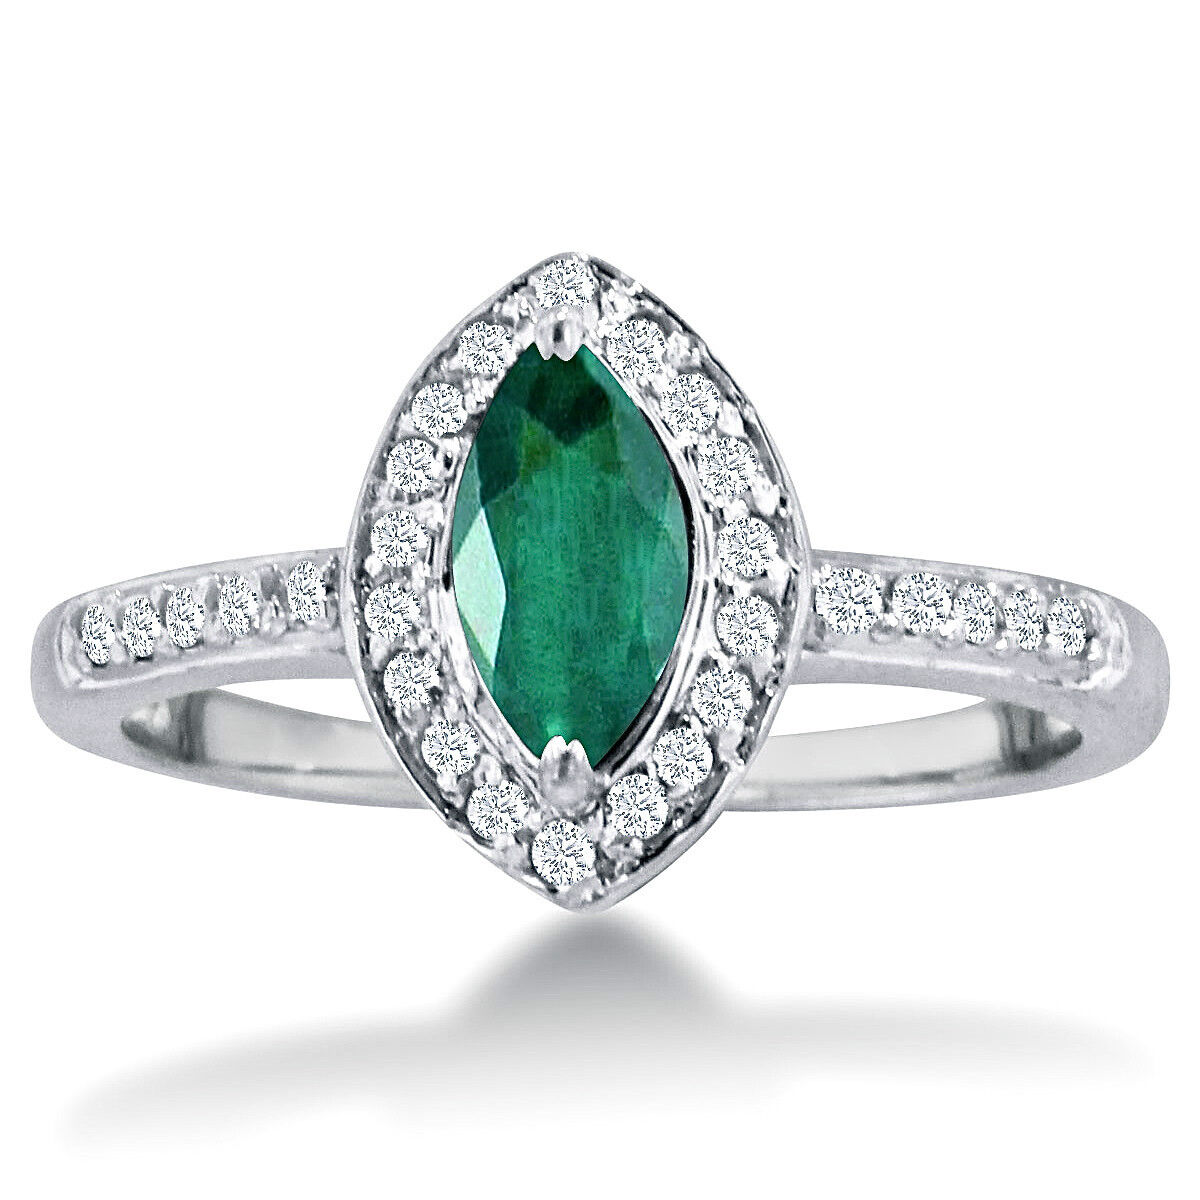 14K WHITE gold 1CT MARQUISE EMERALD AND DIAMOND HALO RING, SIZE-7